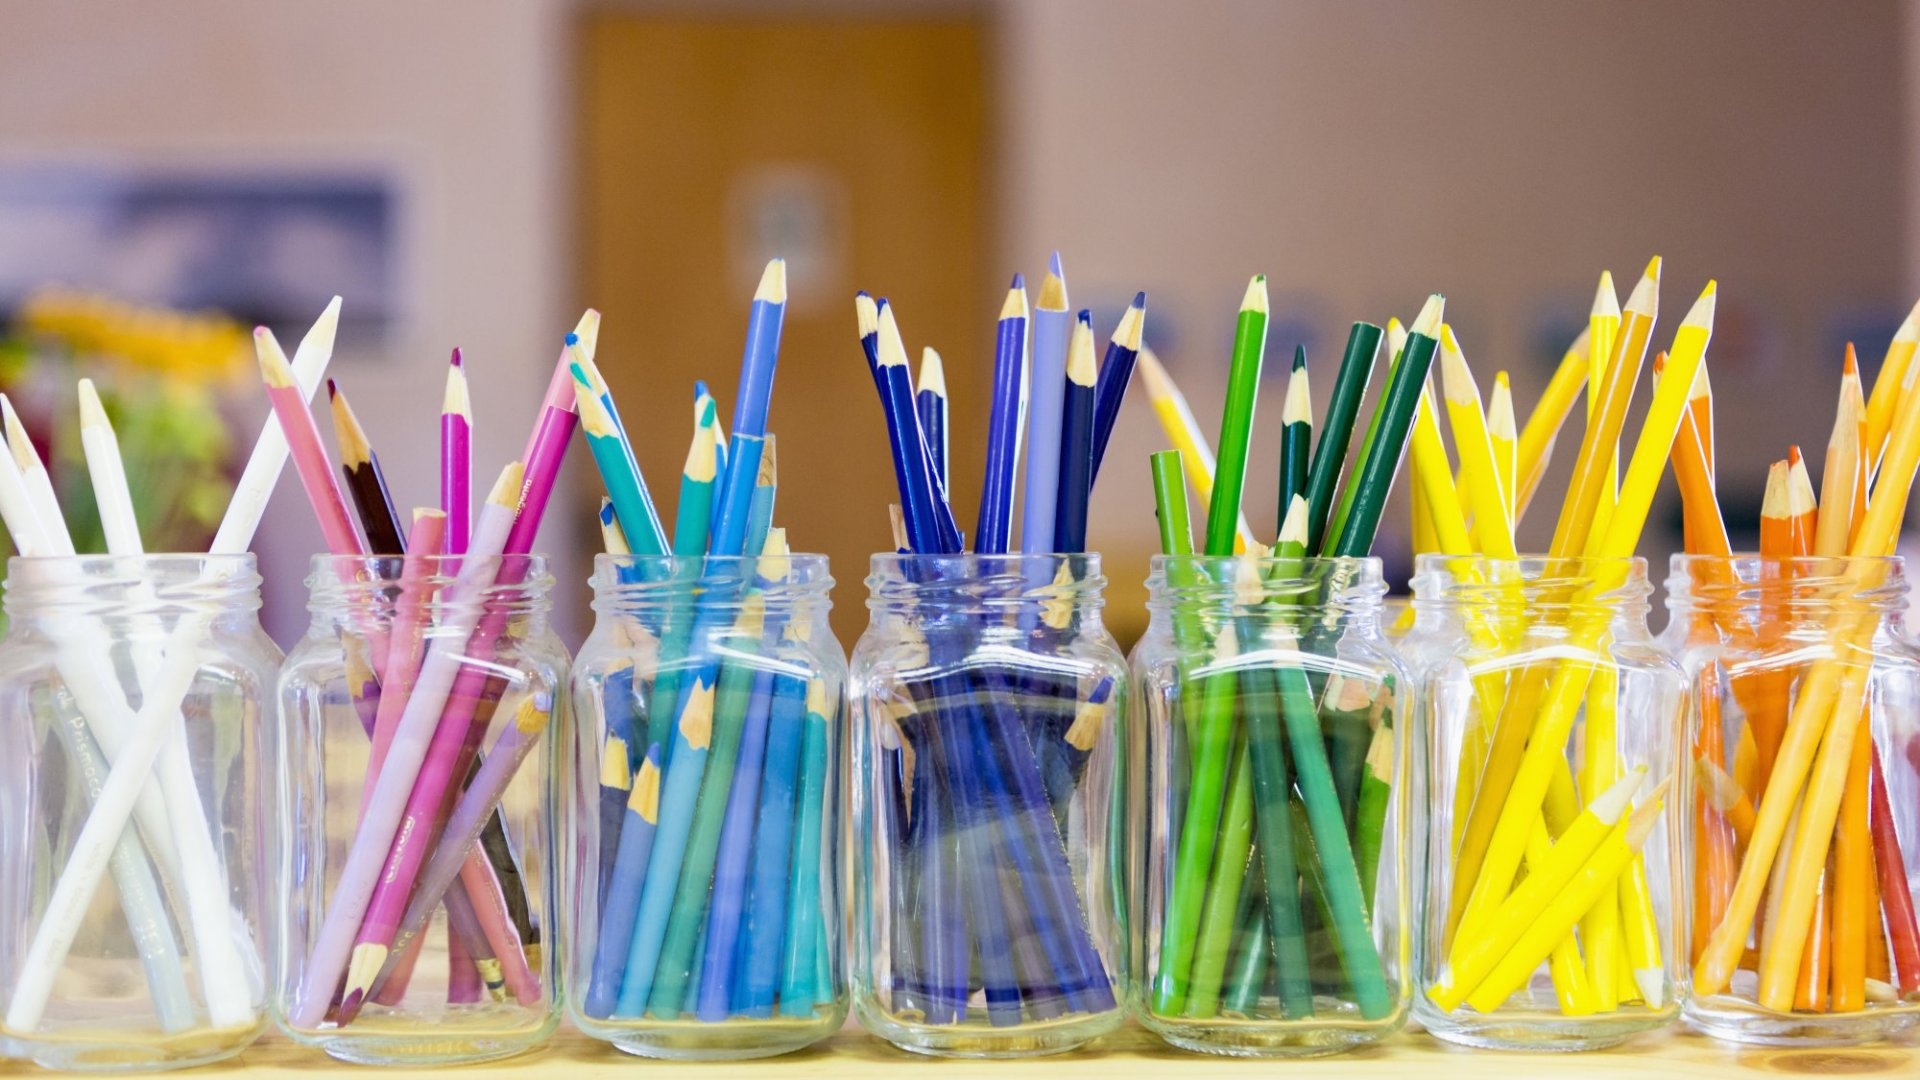 Every color pencil  has its own jar and home.